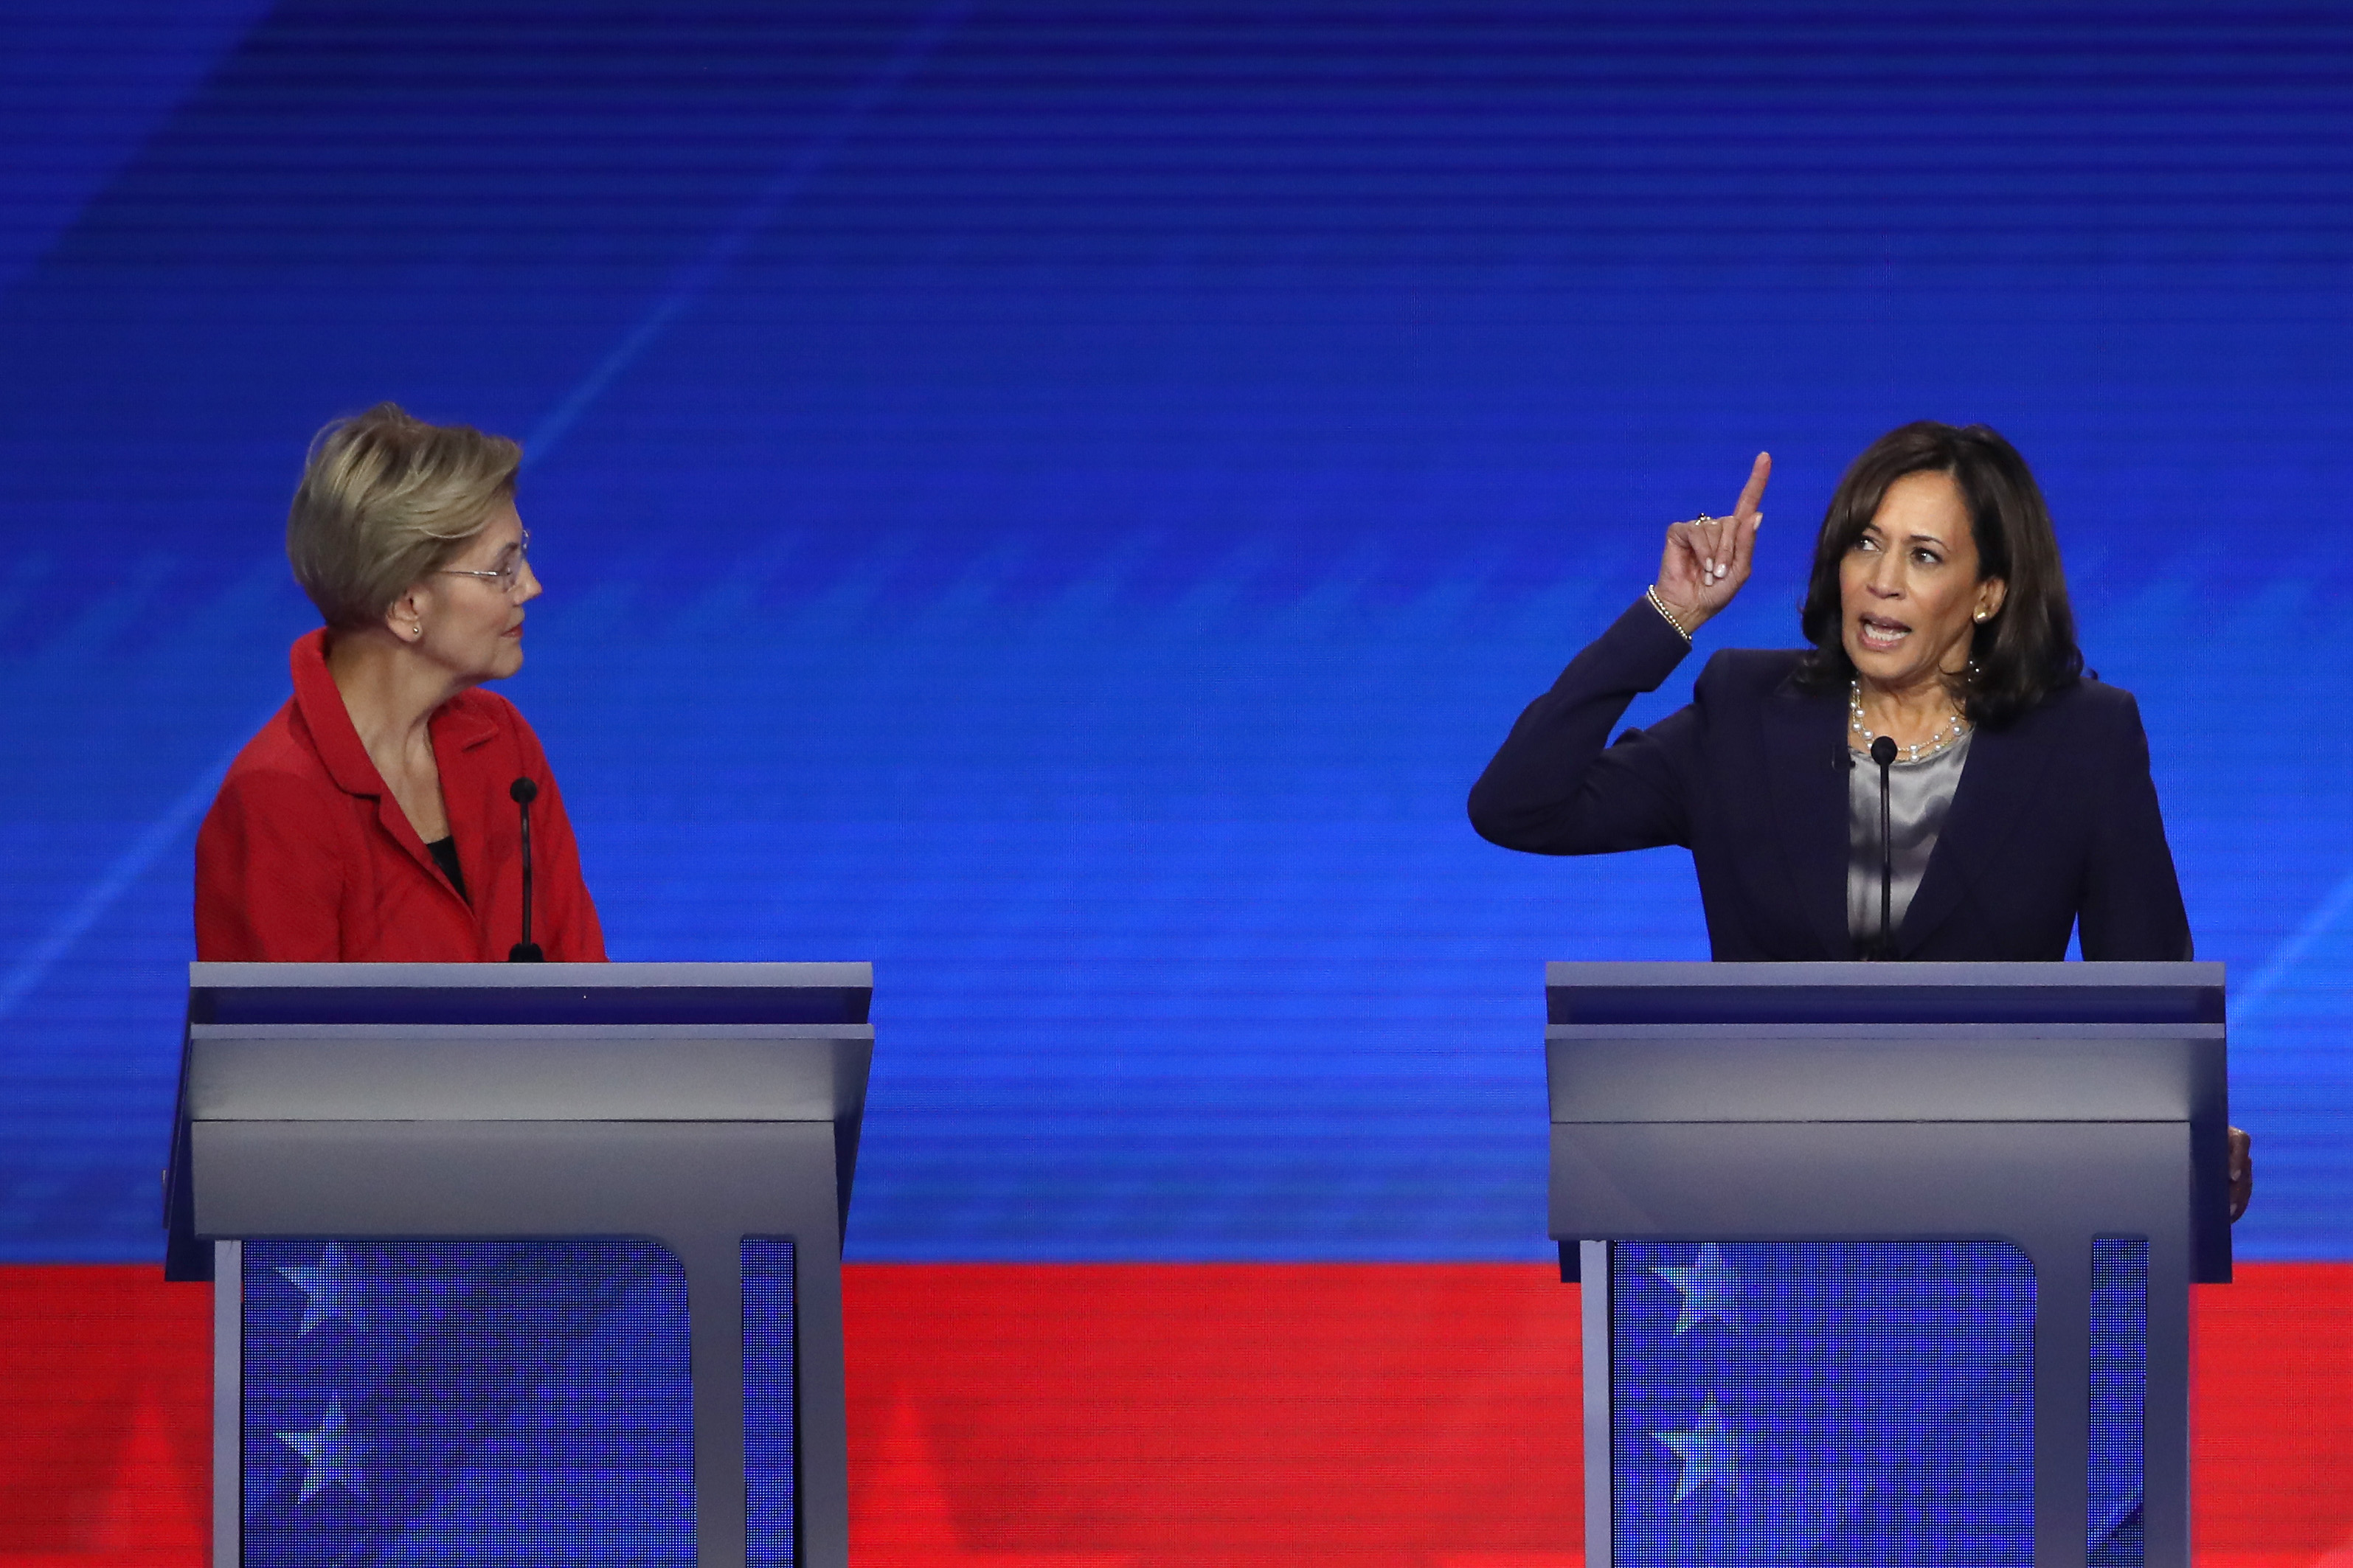 Elizabeth Warren and Kamala Harris at their podiums at the fourth Democratic debate.